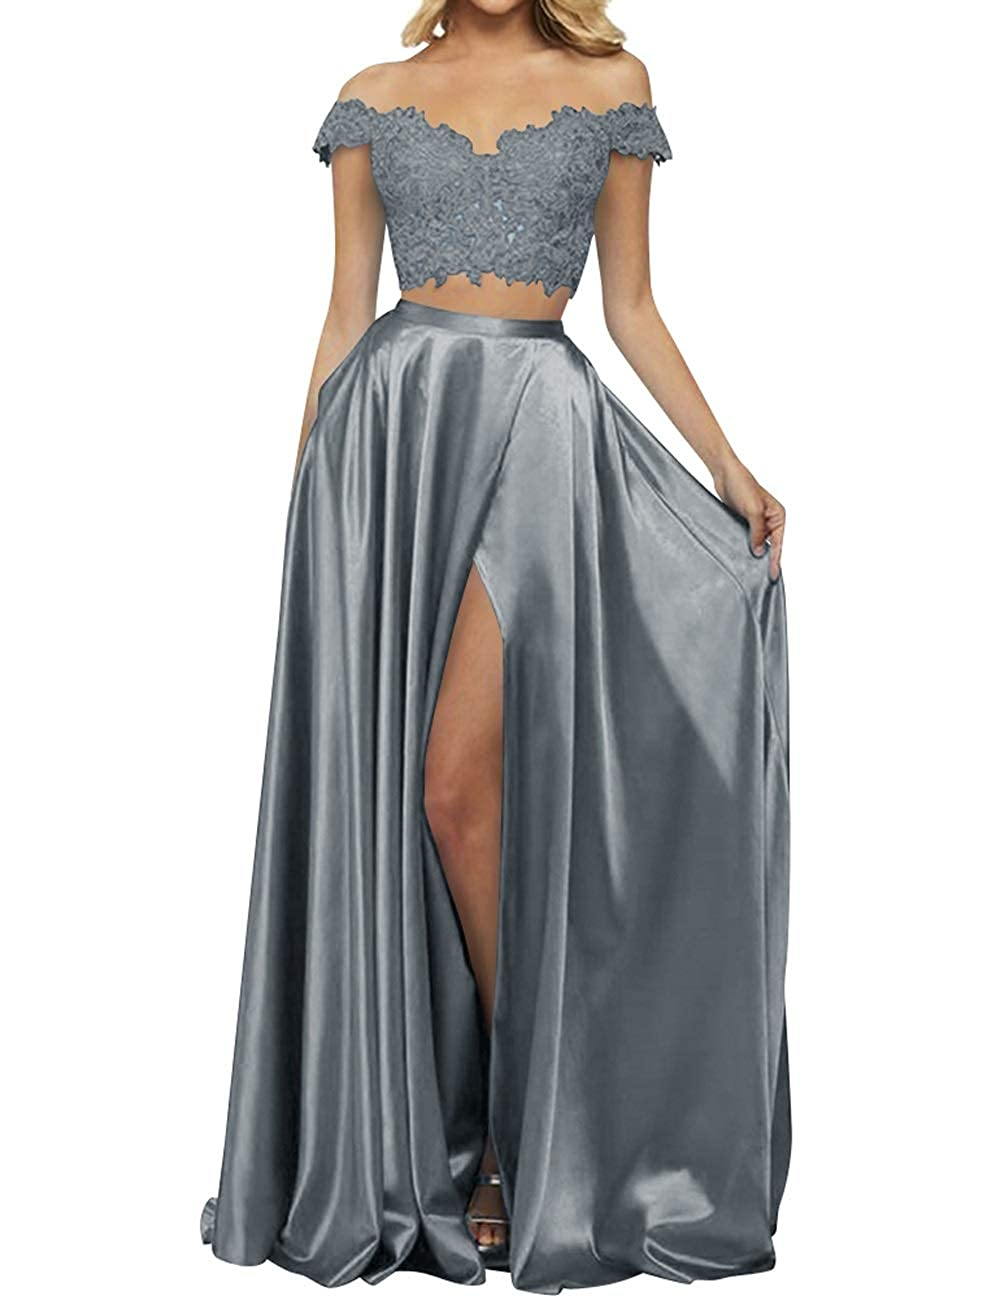 Steel Grey MorySong Women's 2 Piece Lace Satin High Split Off The Shoulder Prom Evening Dress